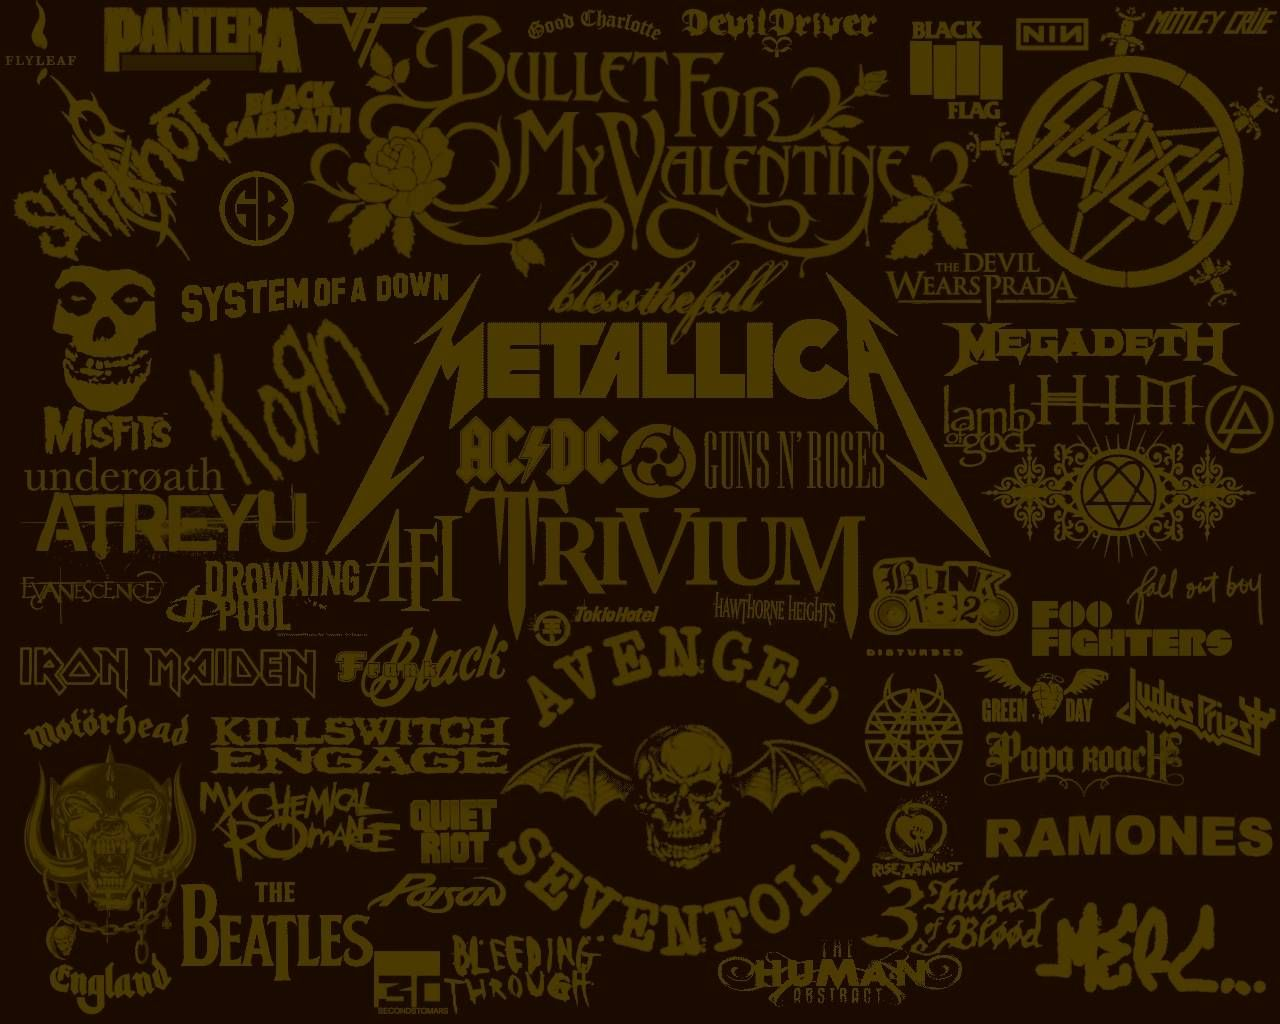 Rock Band Wallpapers Band Wallpapers Classic Rock Bands Image Rock